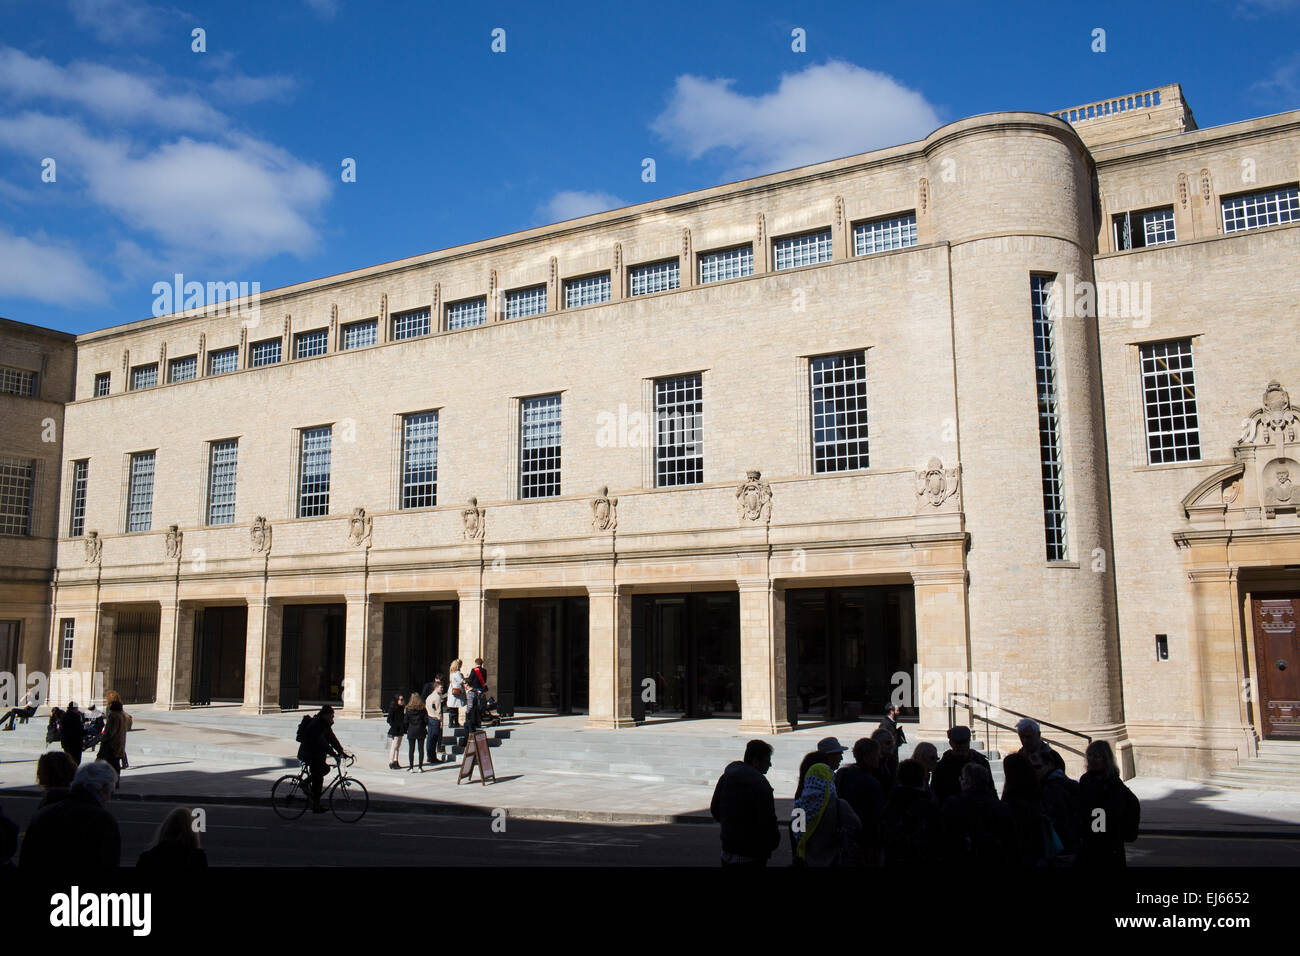 Weston Library in Oxford, England. Reopened after an £80 million facelift. Stock Photo